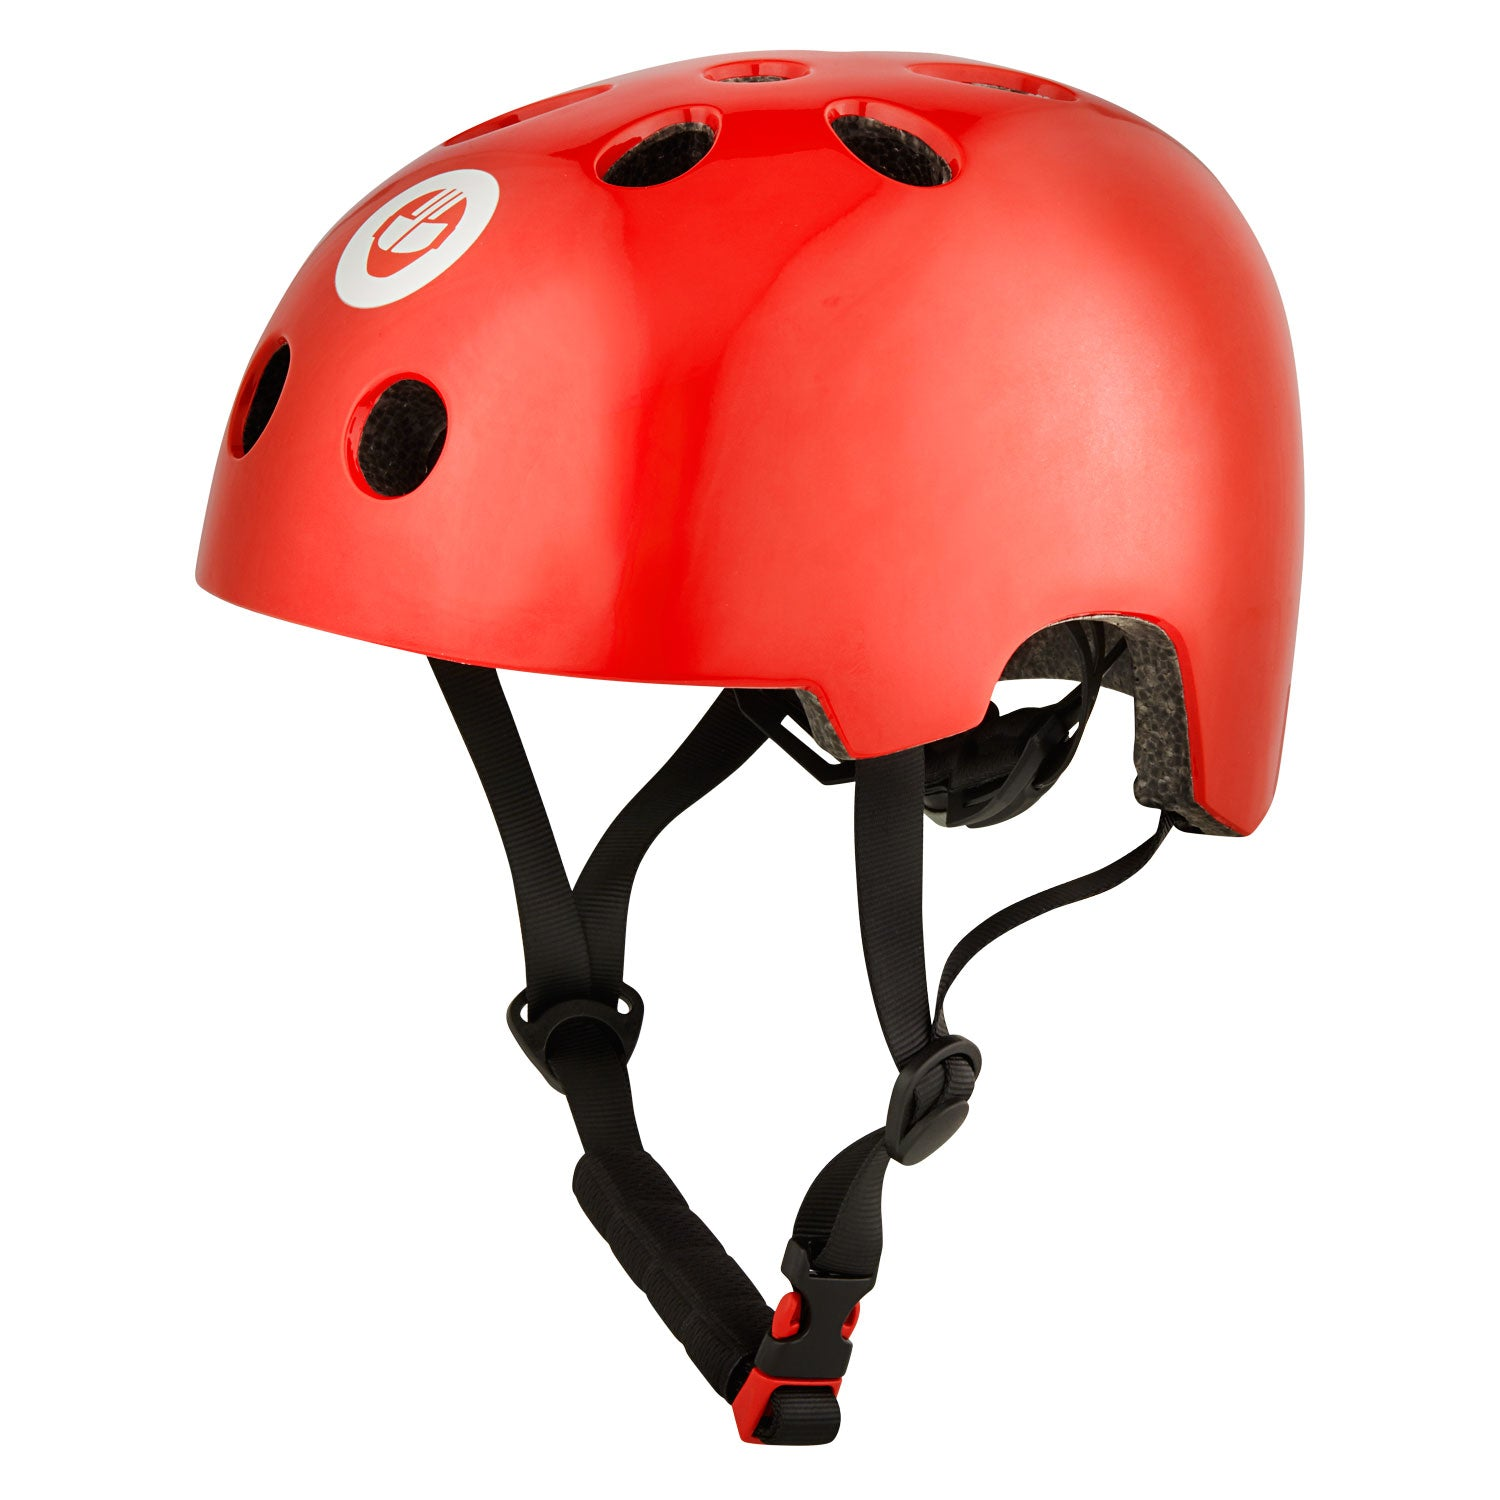 Red GOTRAX multi-sport helmet main image